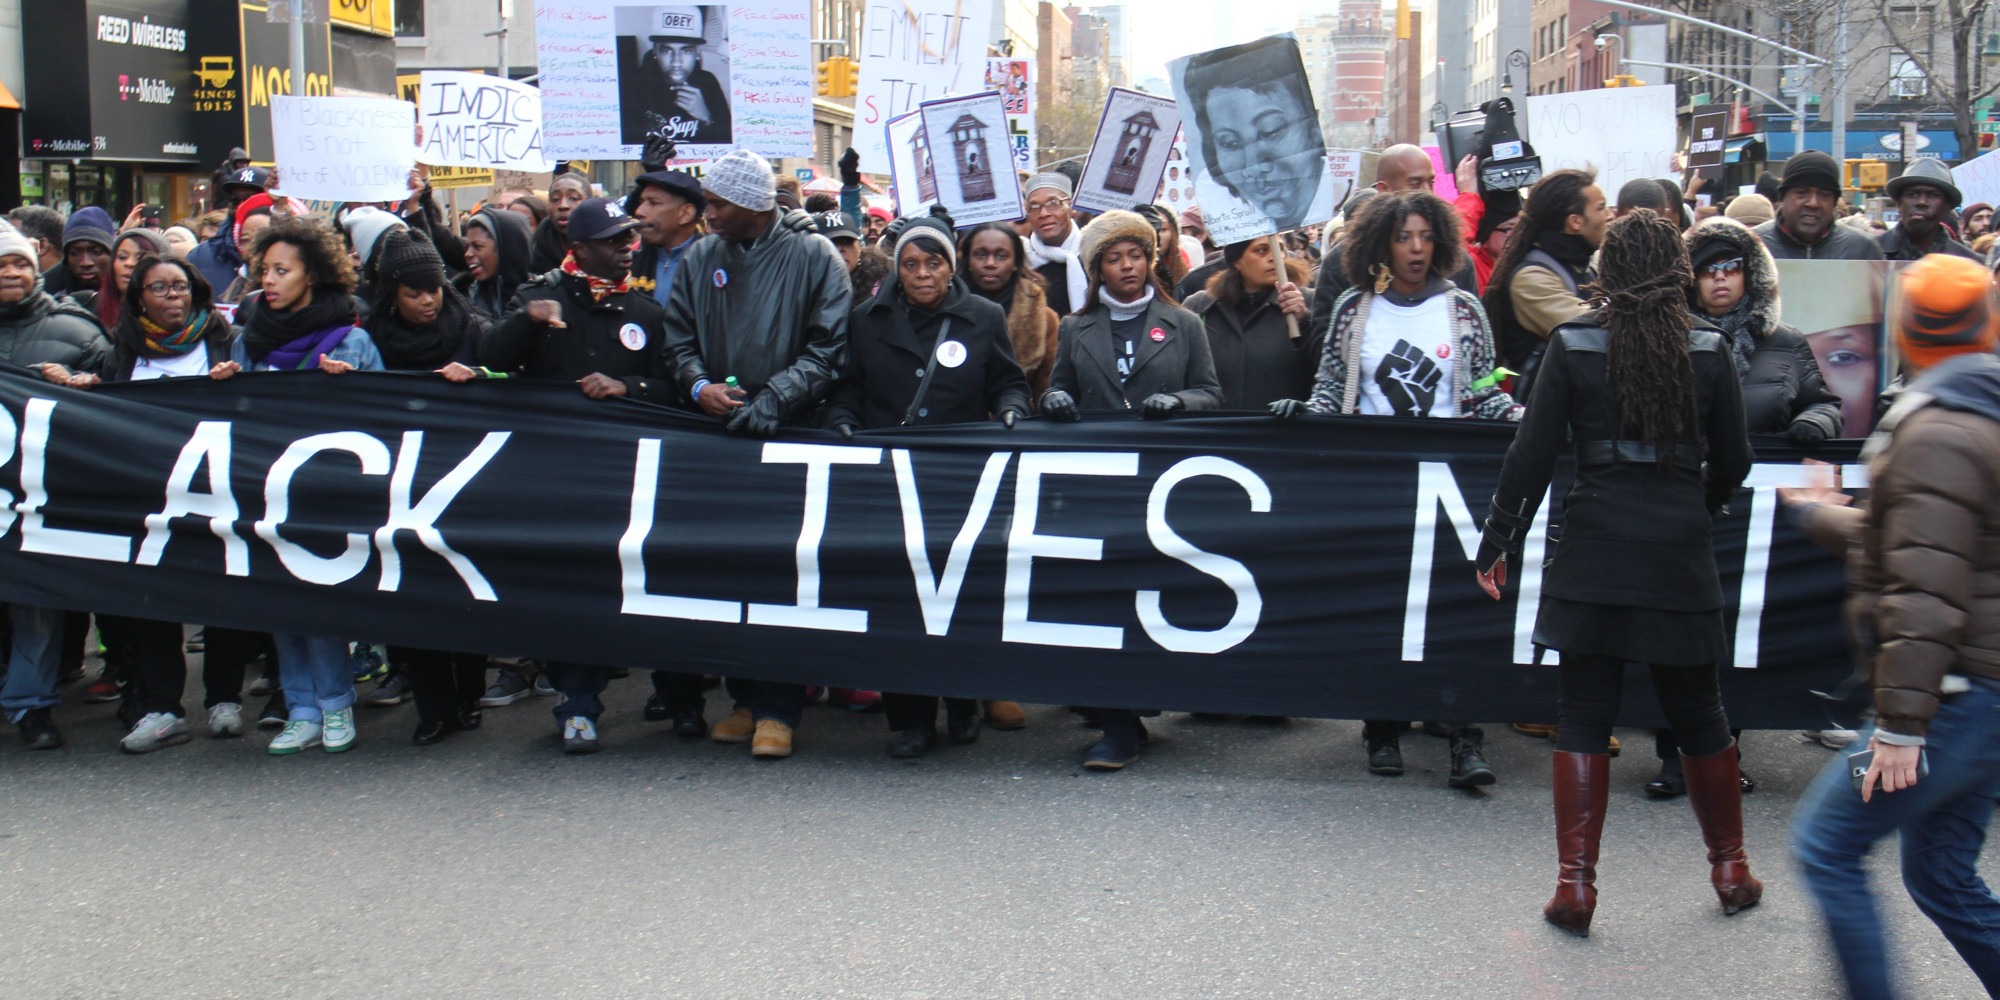 Image: Did you know Black Lives Matter supports abortion, homosexuality, anti-family agenda?